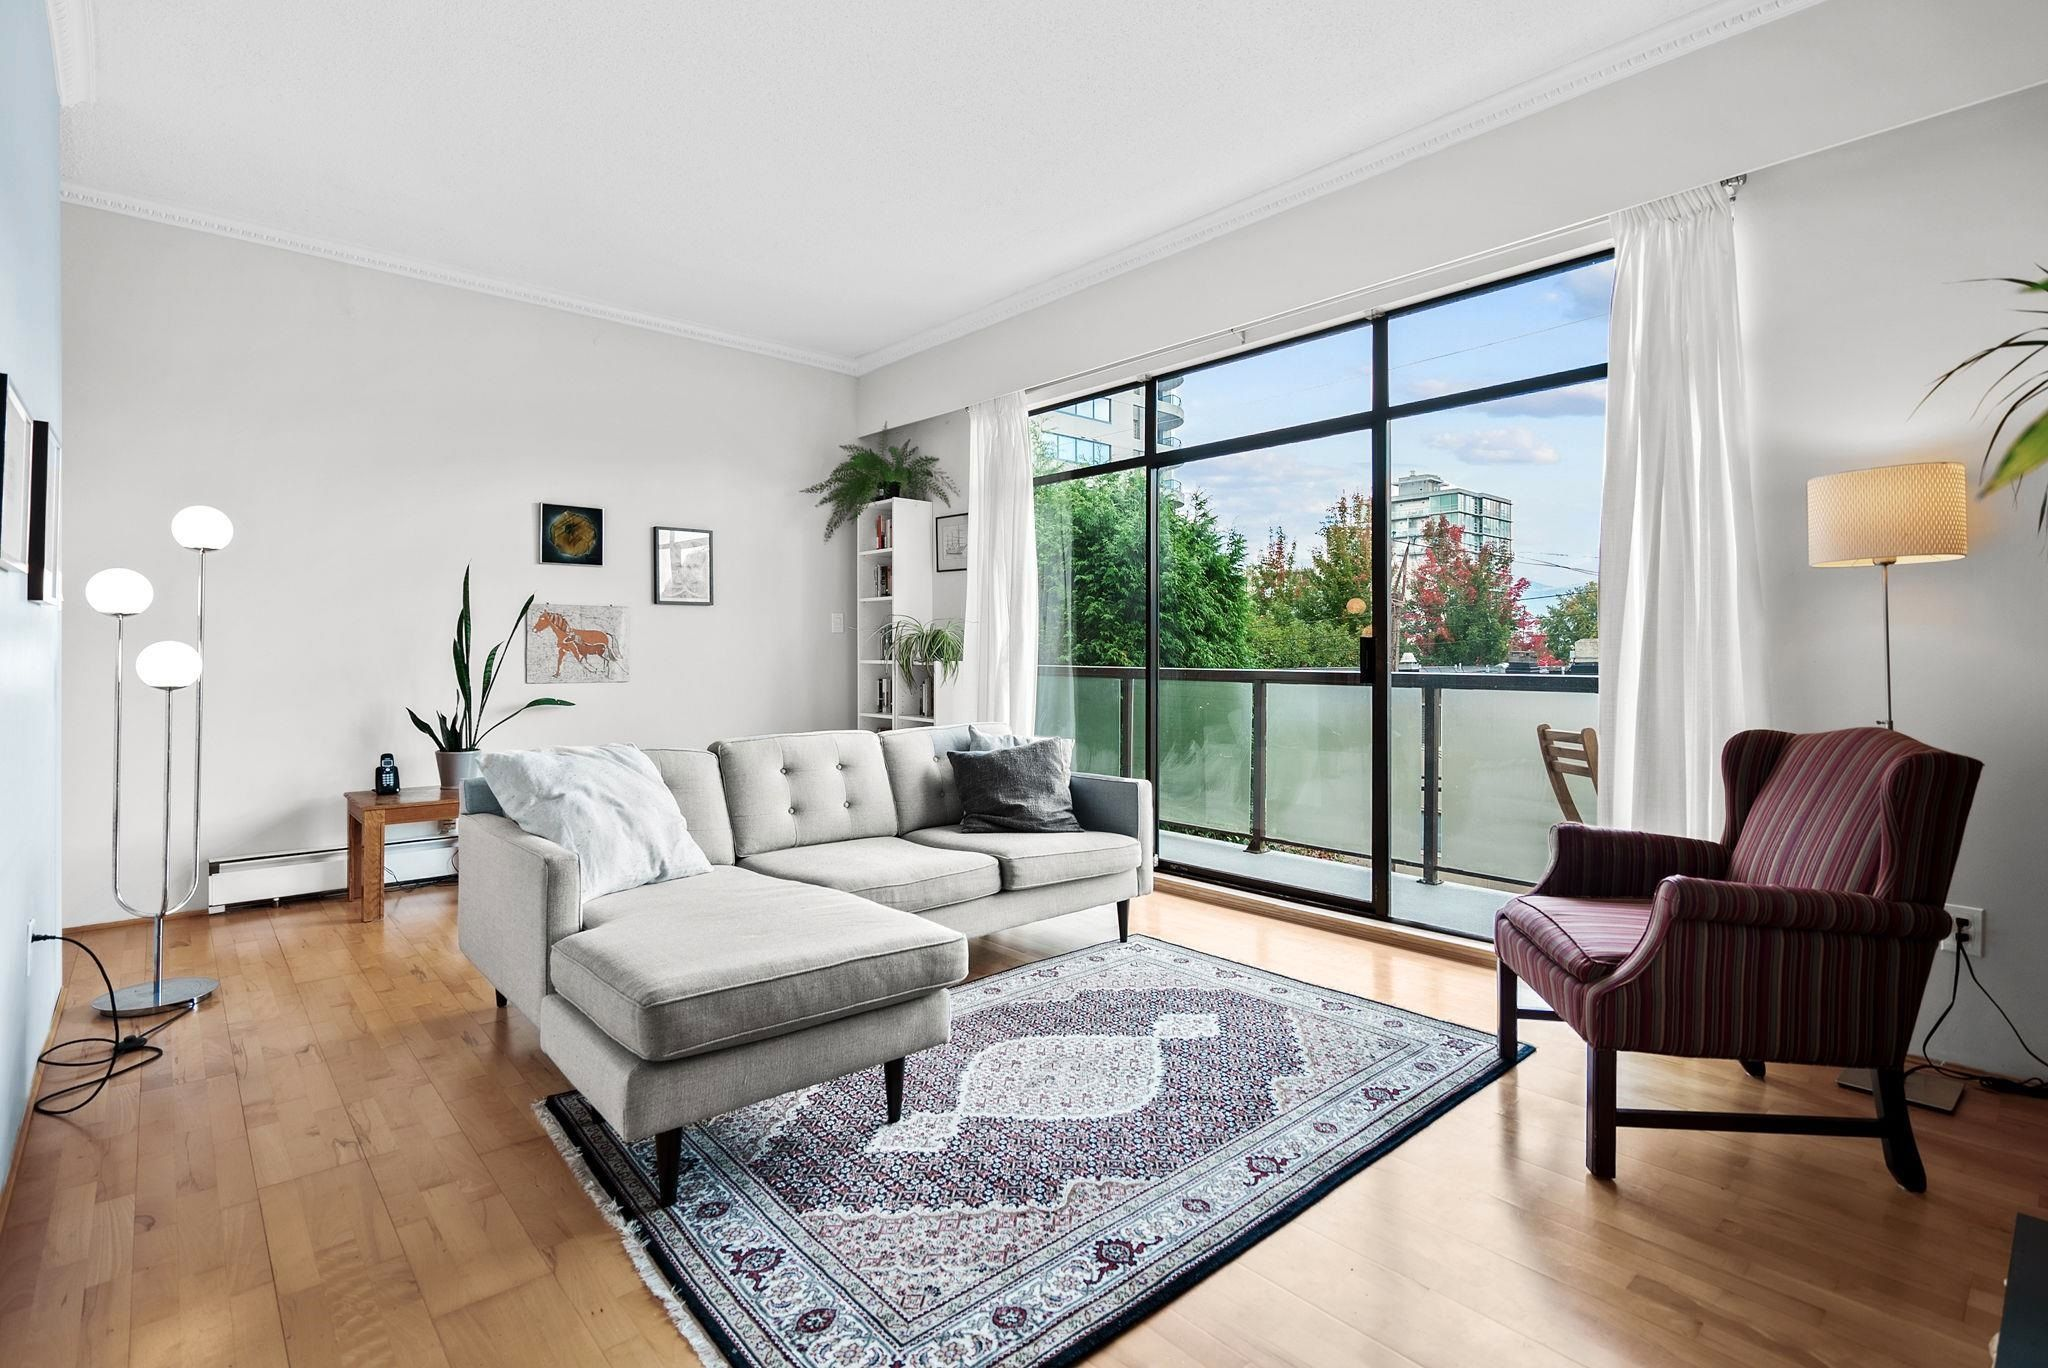 """Main Photo: 215 1345 W 15TH Avenue in Vancouver: Fairview VW Condo for sale in """"SUNRISE WEST"""" (Vancouver West)  : MLS®# R2625025"""